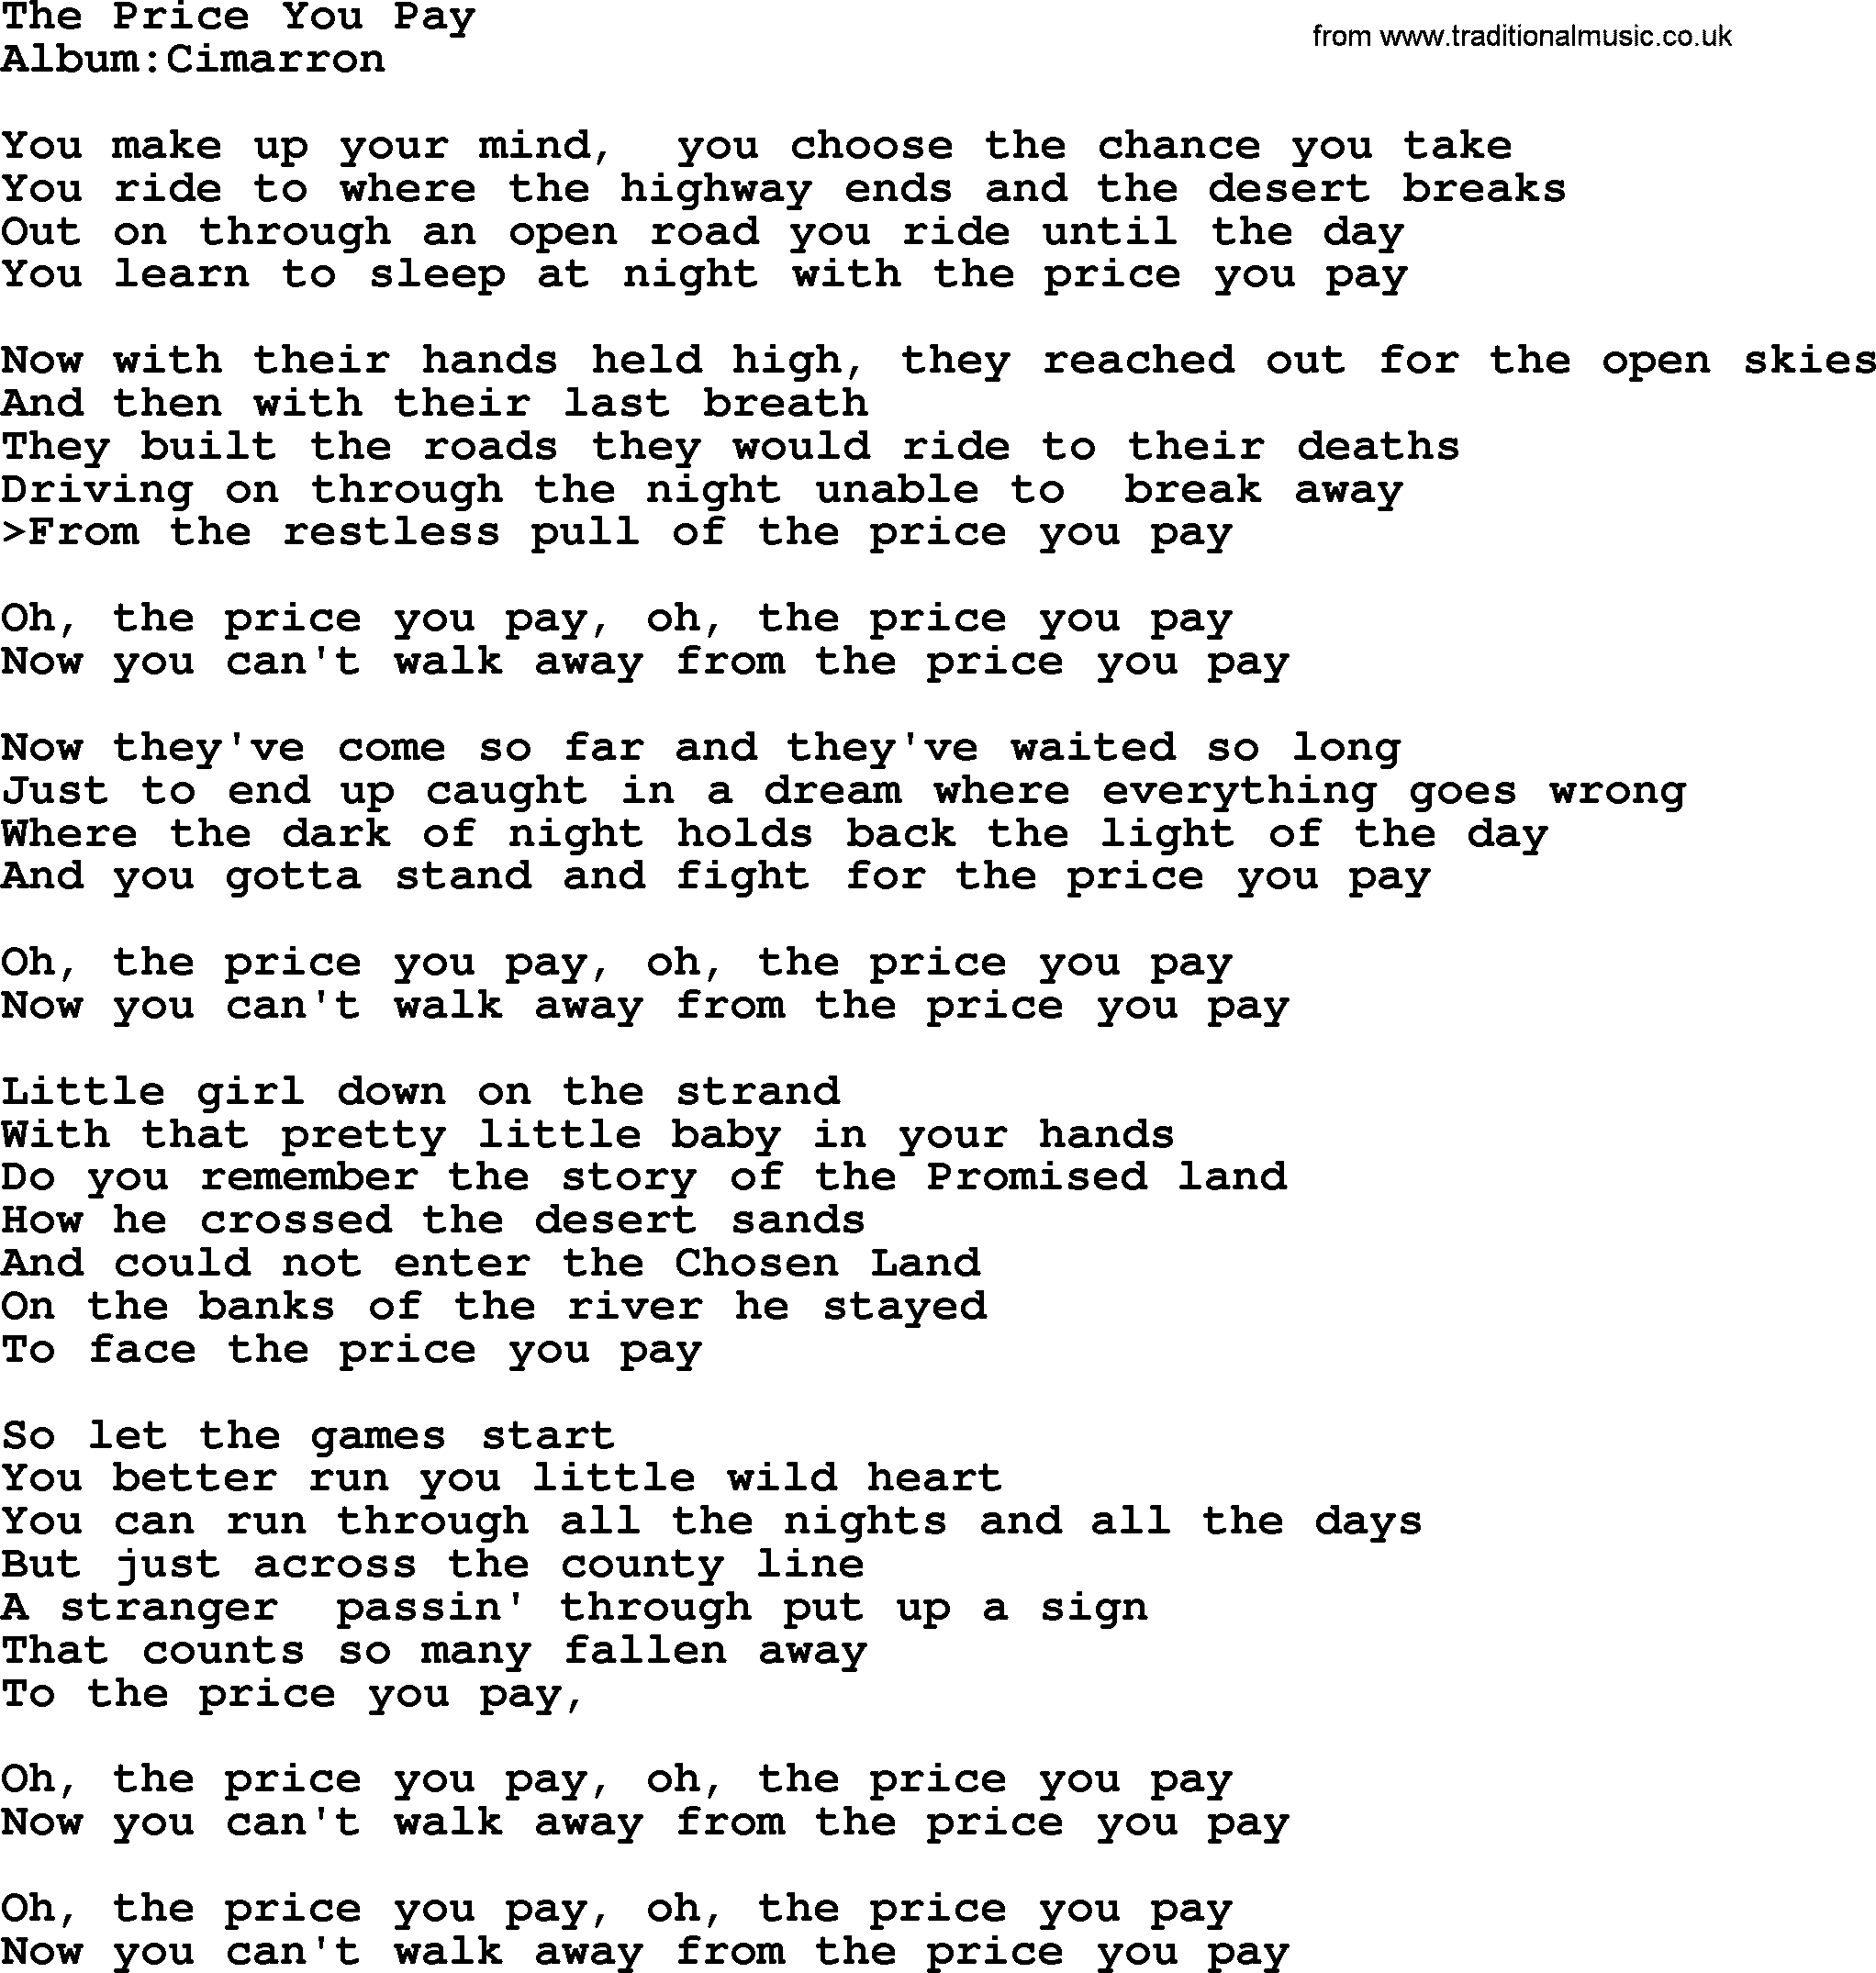 Emmylou Harris song: The Price You Pay, lyrics